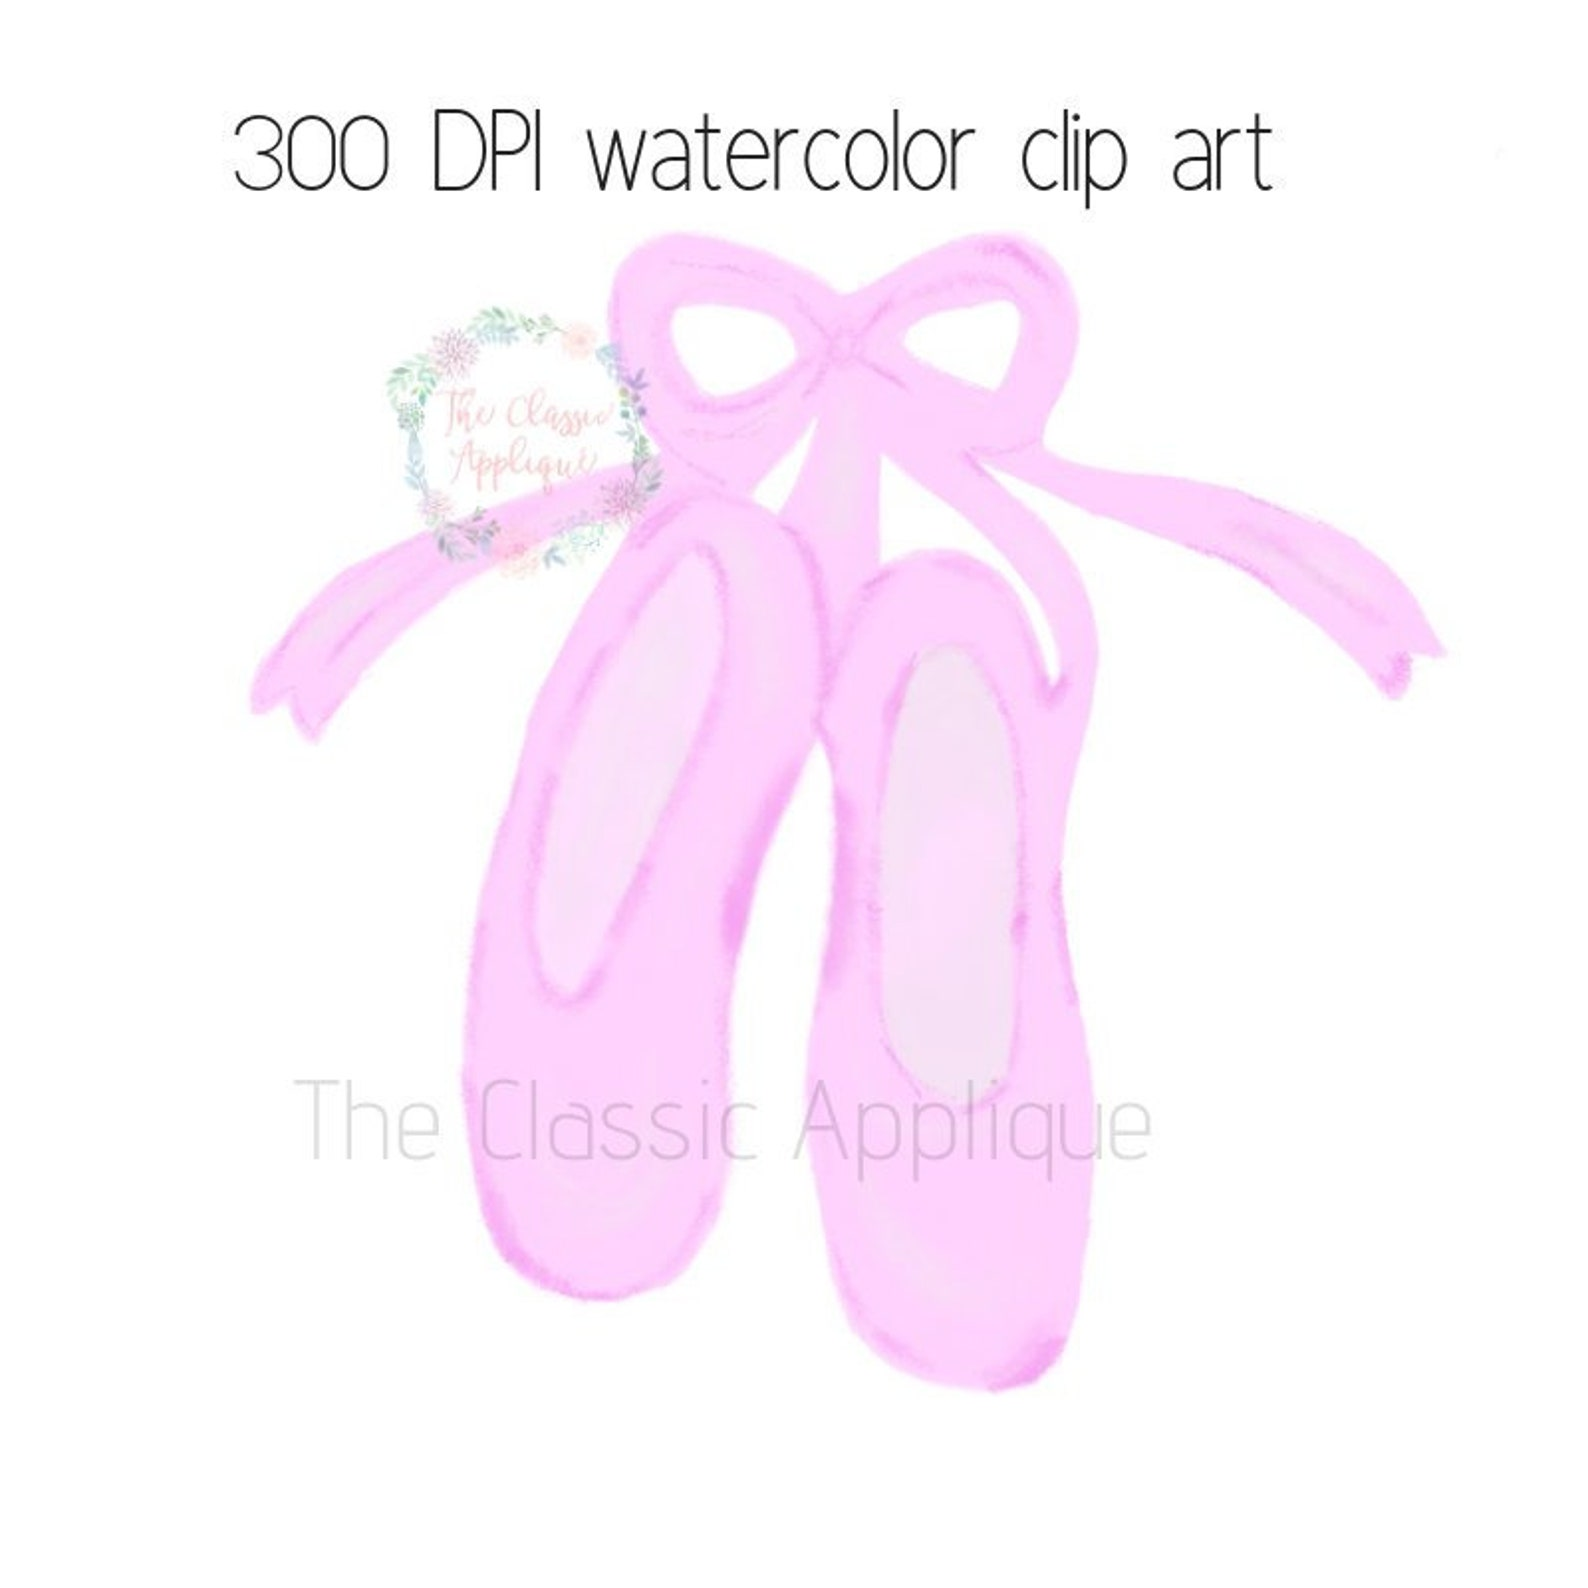 ballerina ballet shoes slippers watercolor png printable digital clip art file for sublimation, htv, paper goods, and more